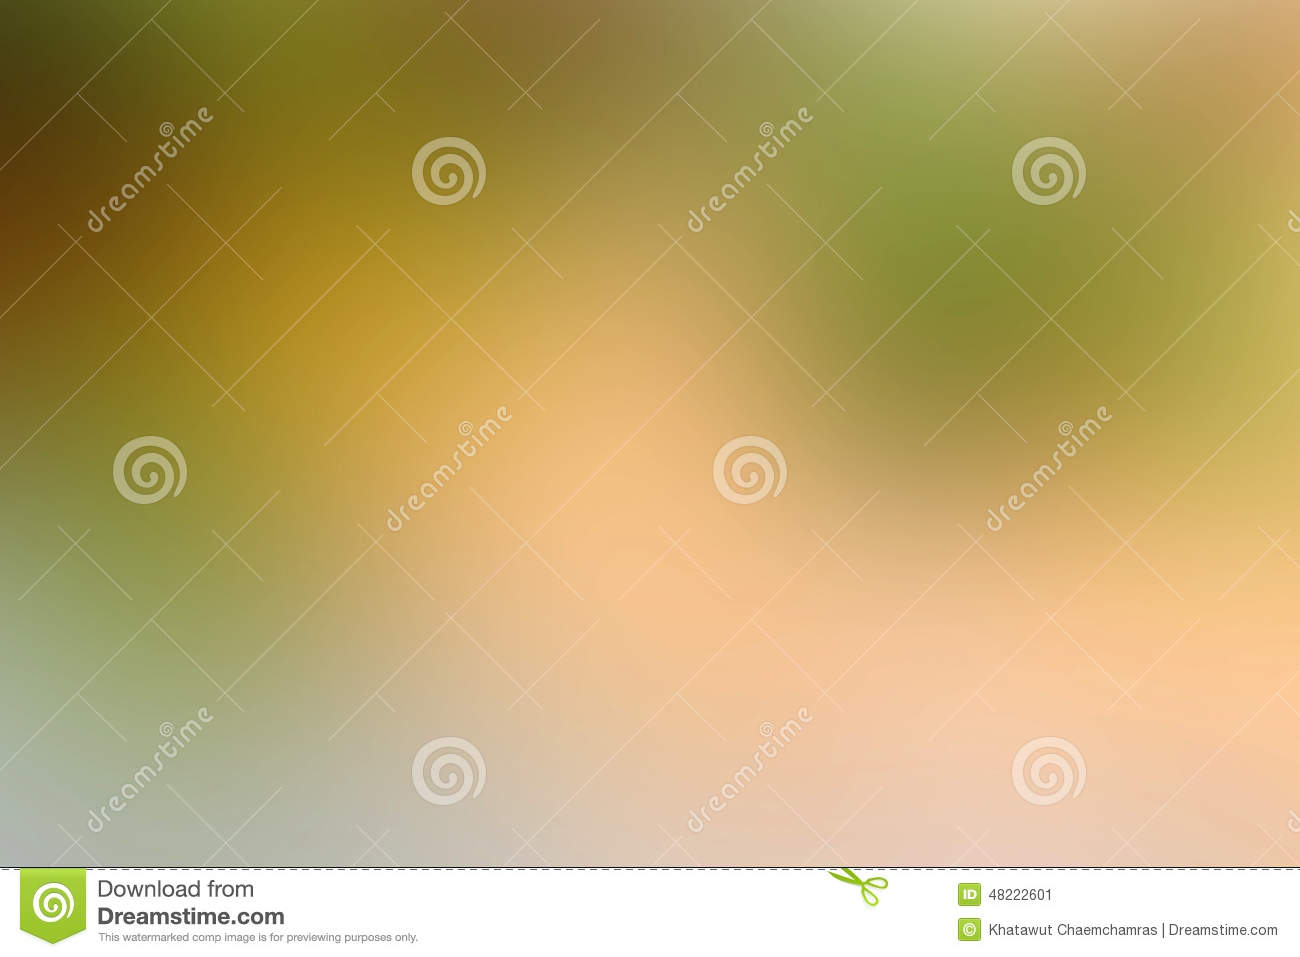 Abstract Blurry Backgrounds Stock Image - Image of orange ...